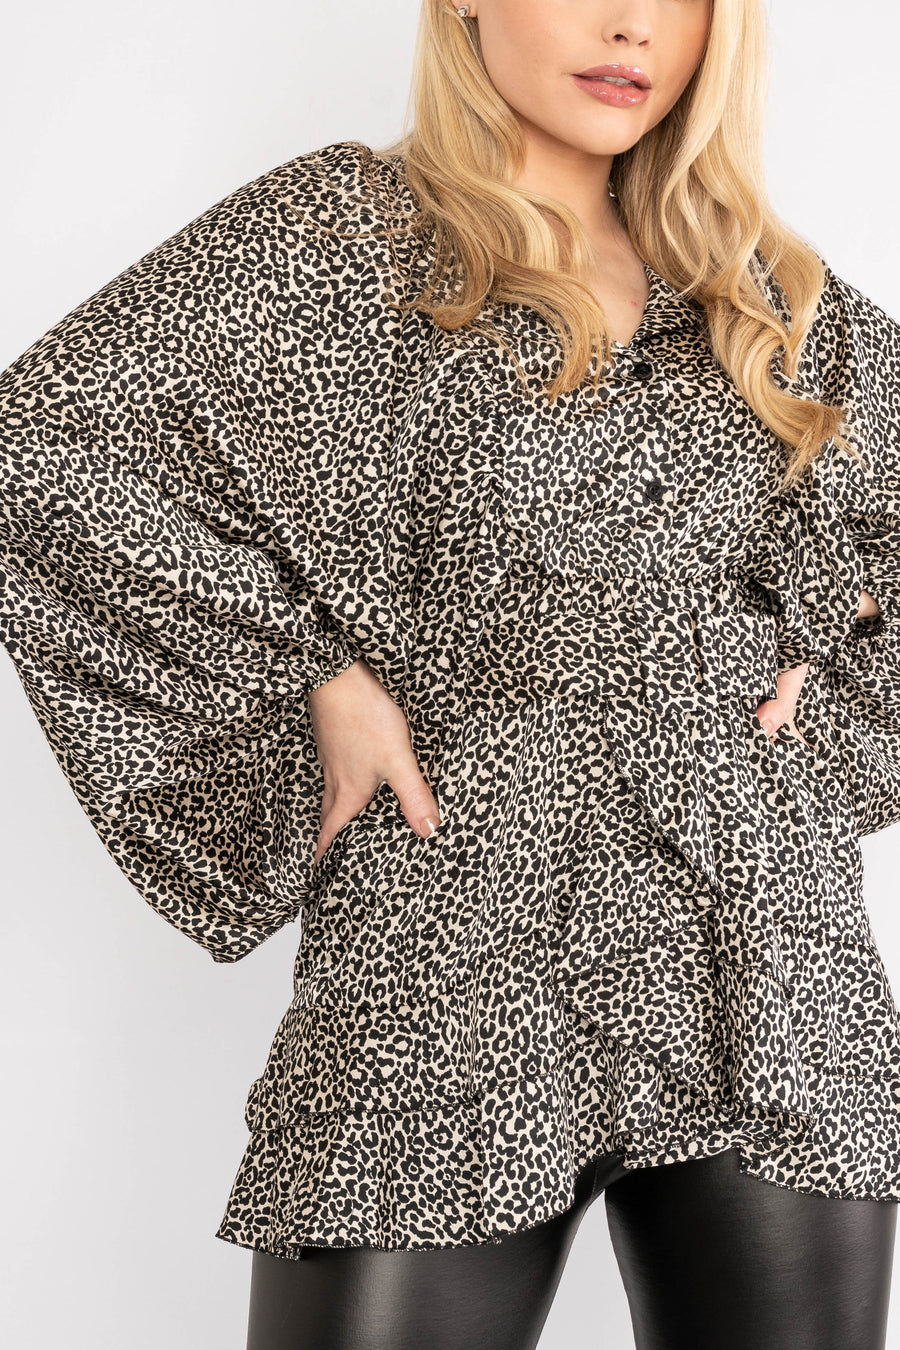 Long sleeved leopard print top with ruffled hem.